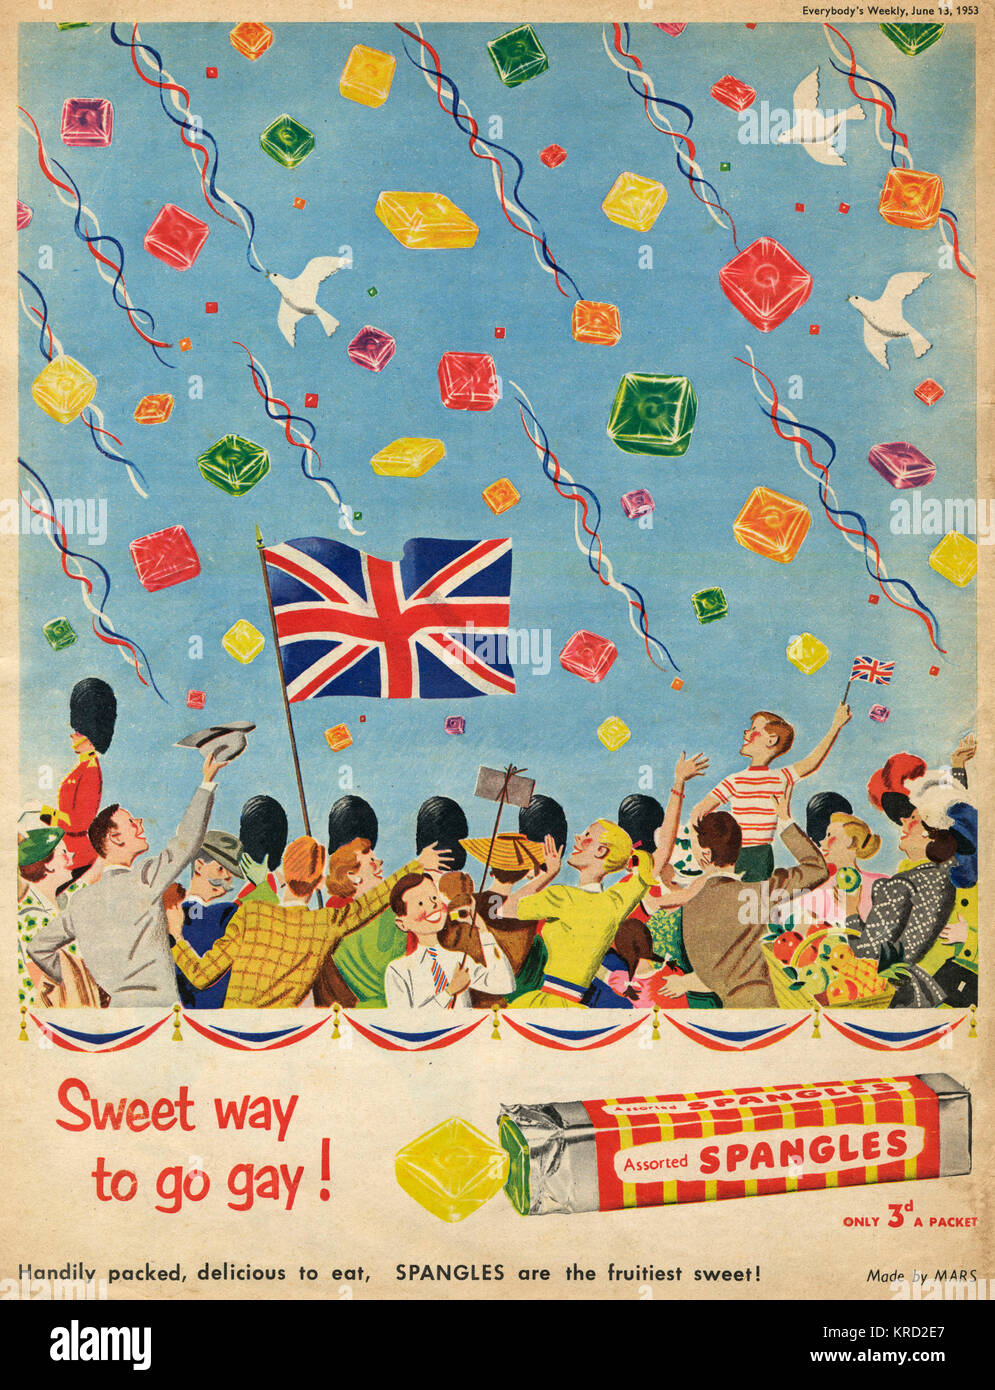 Lovely advertisement for Spangles fruit sweets - the sweet way to go gay - showing a crowd excitedly watching the - Stock Image